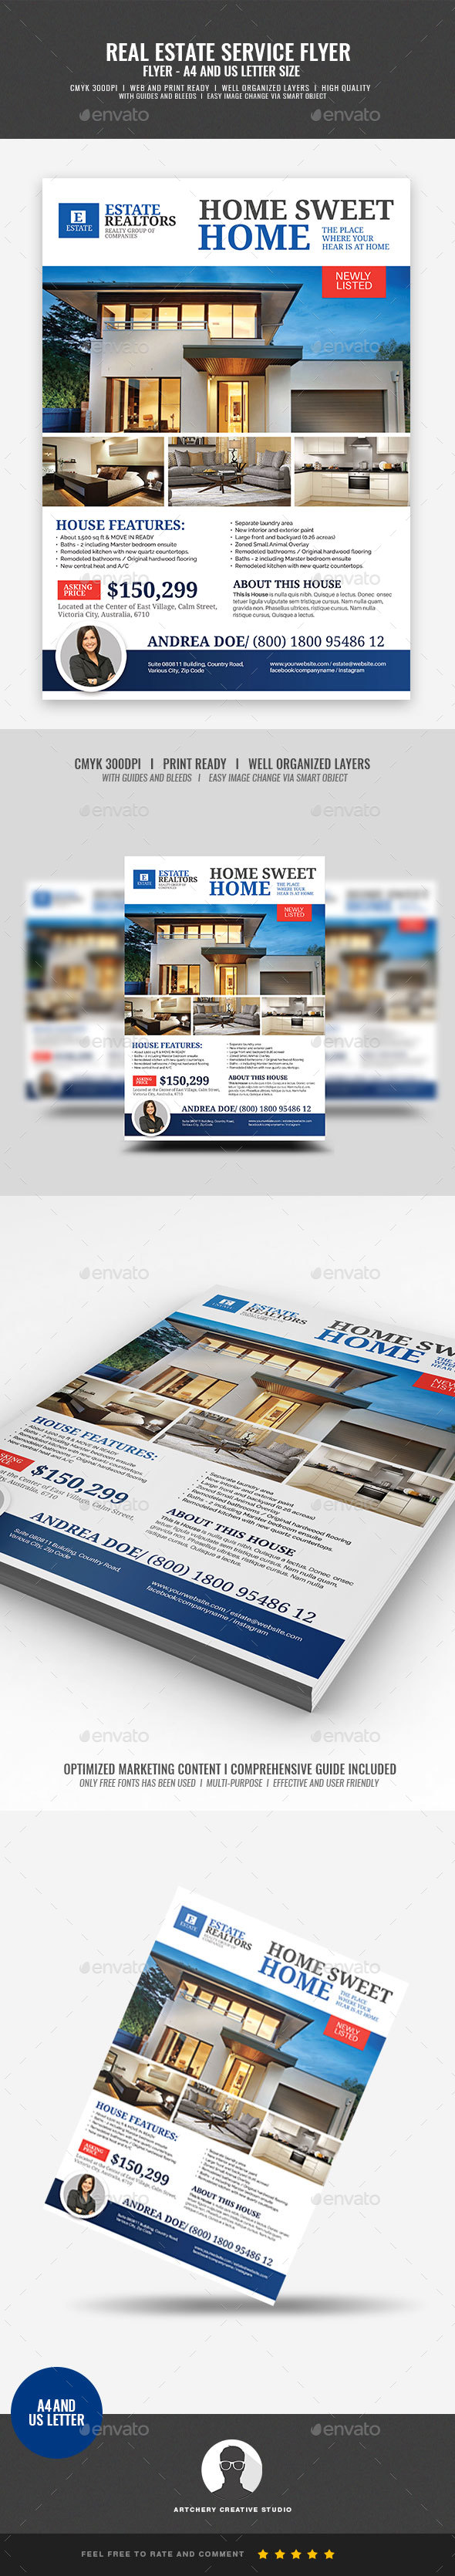 Real Estate Modern House Listing Flyer - Corporate Flyers